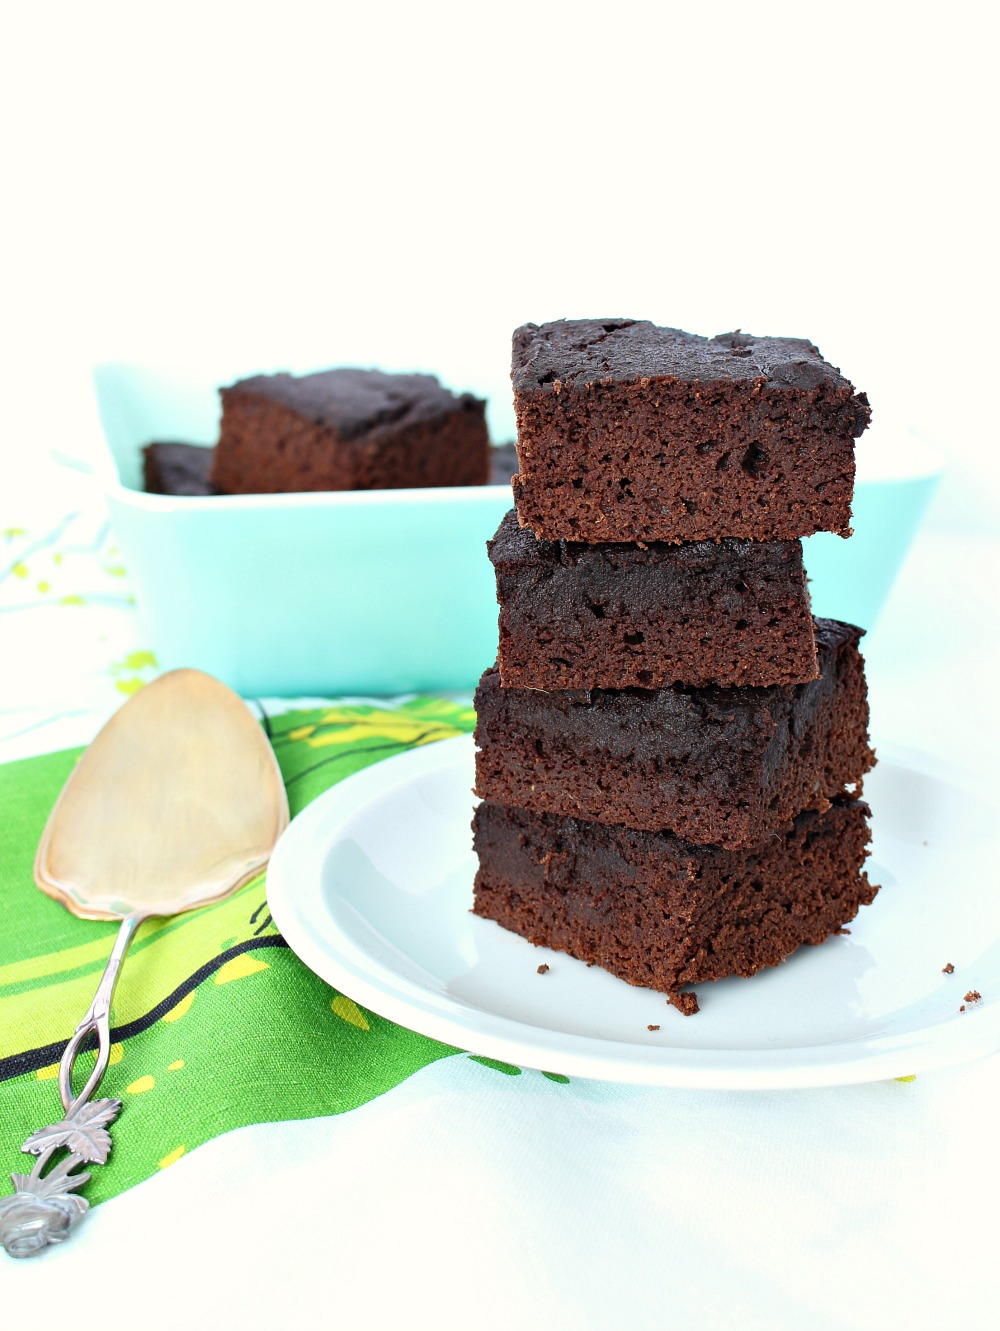 Brownies diabetics can eat in moderation